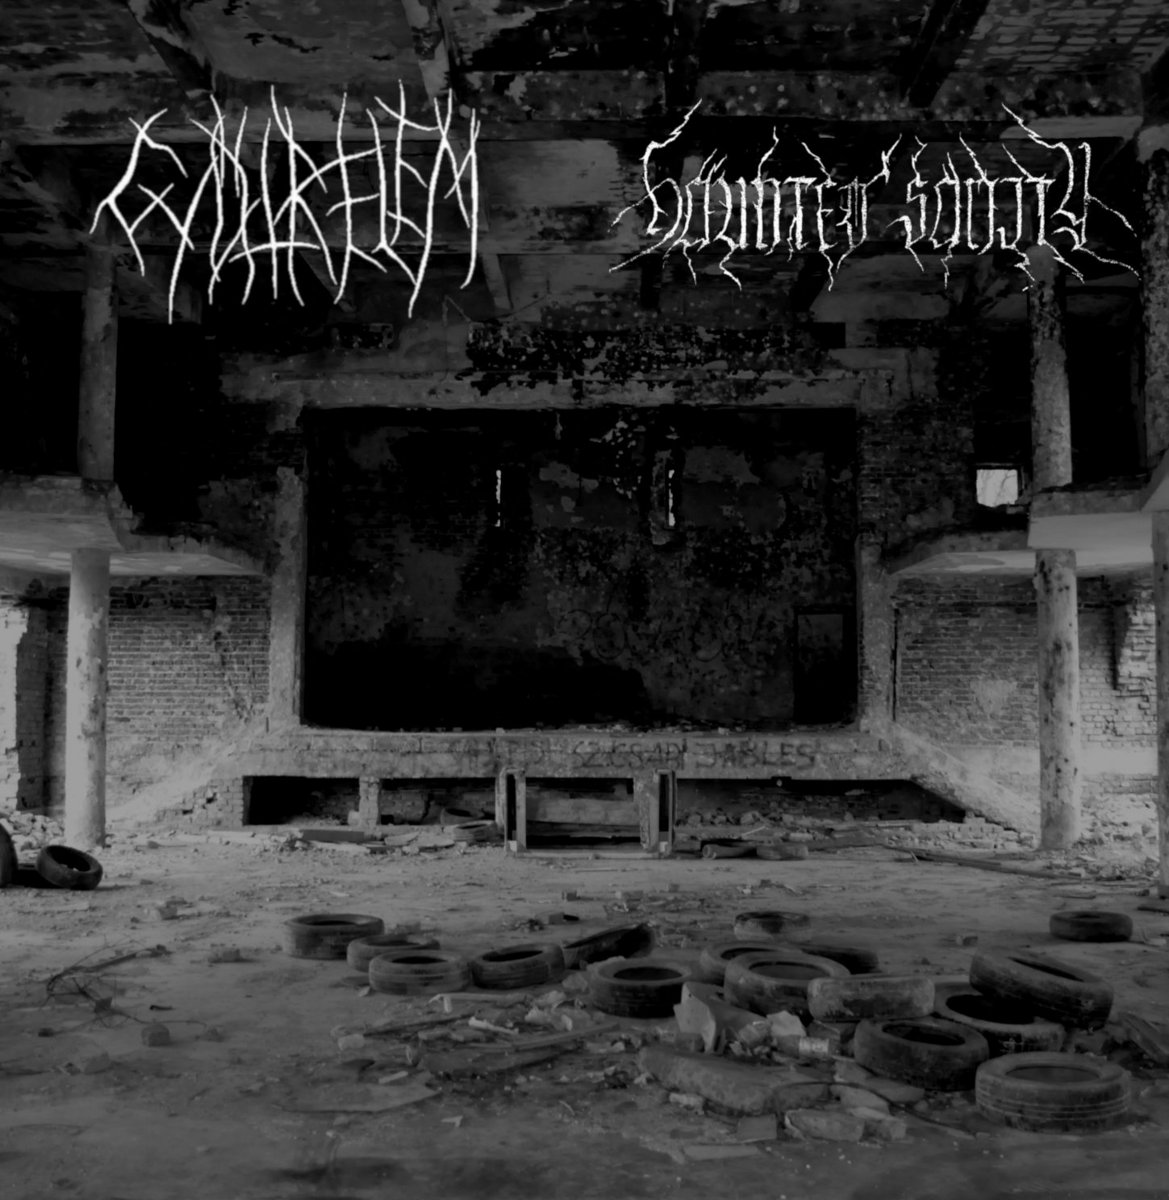 gyotrelem haunted sanity split album black metal le scribe du rock